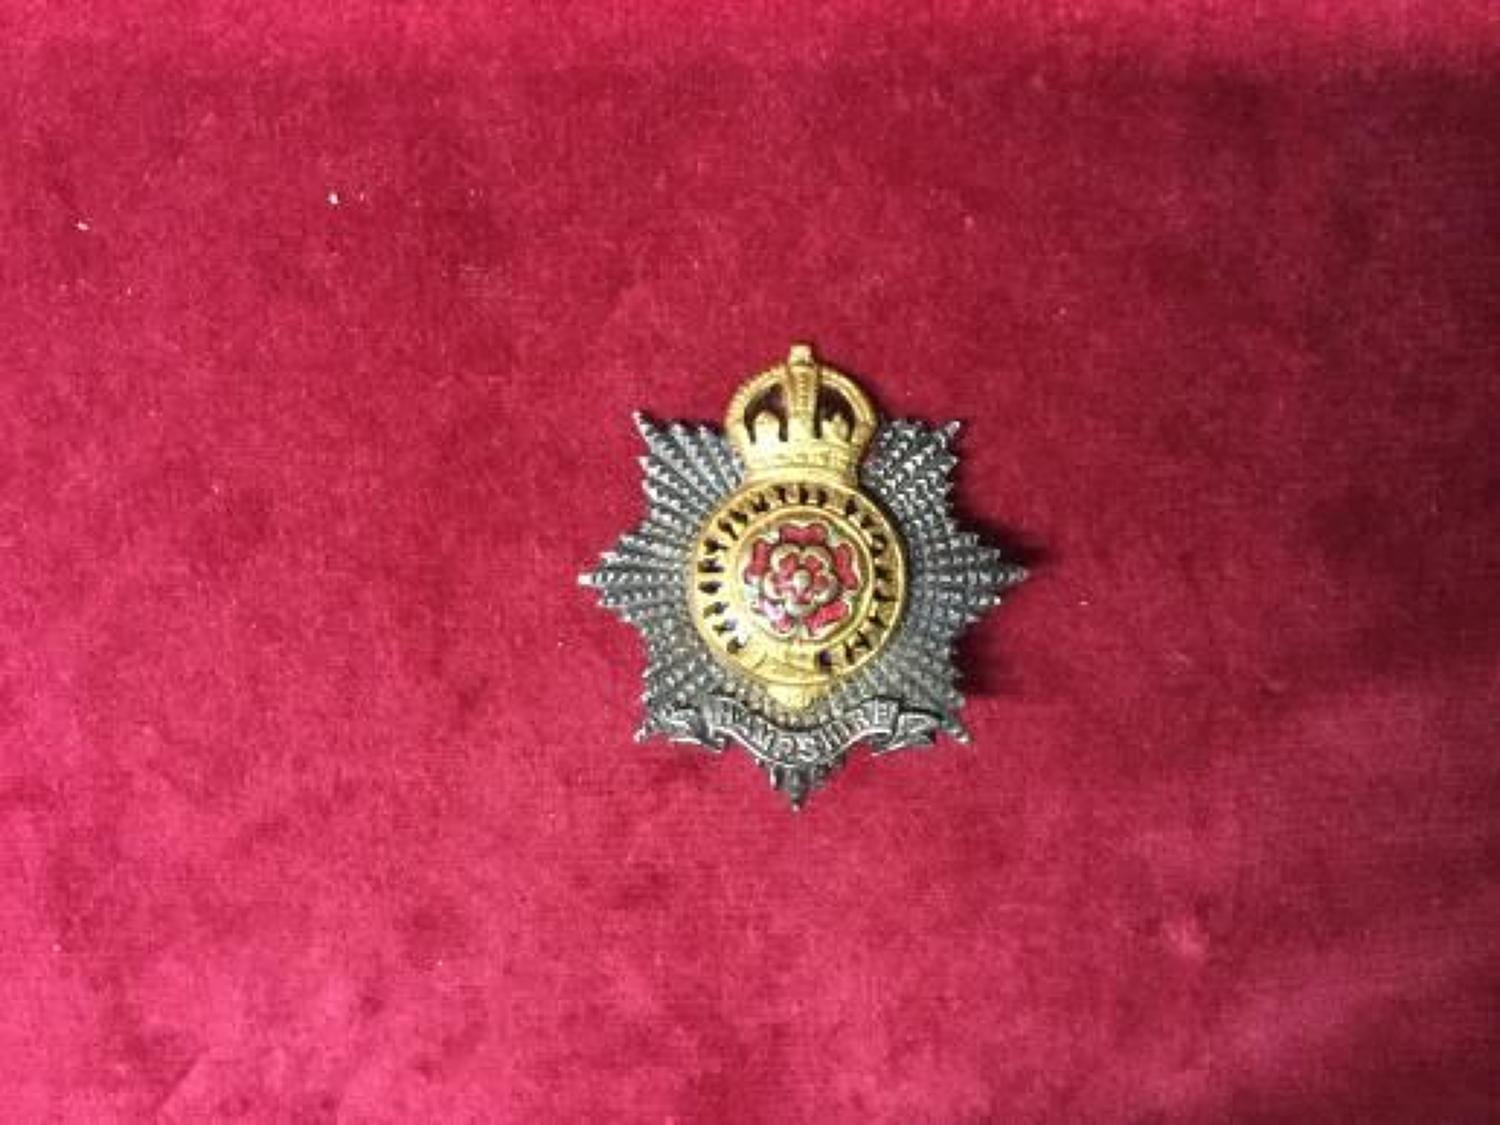 The Hampshire Regiment Officers Cap Insignia